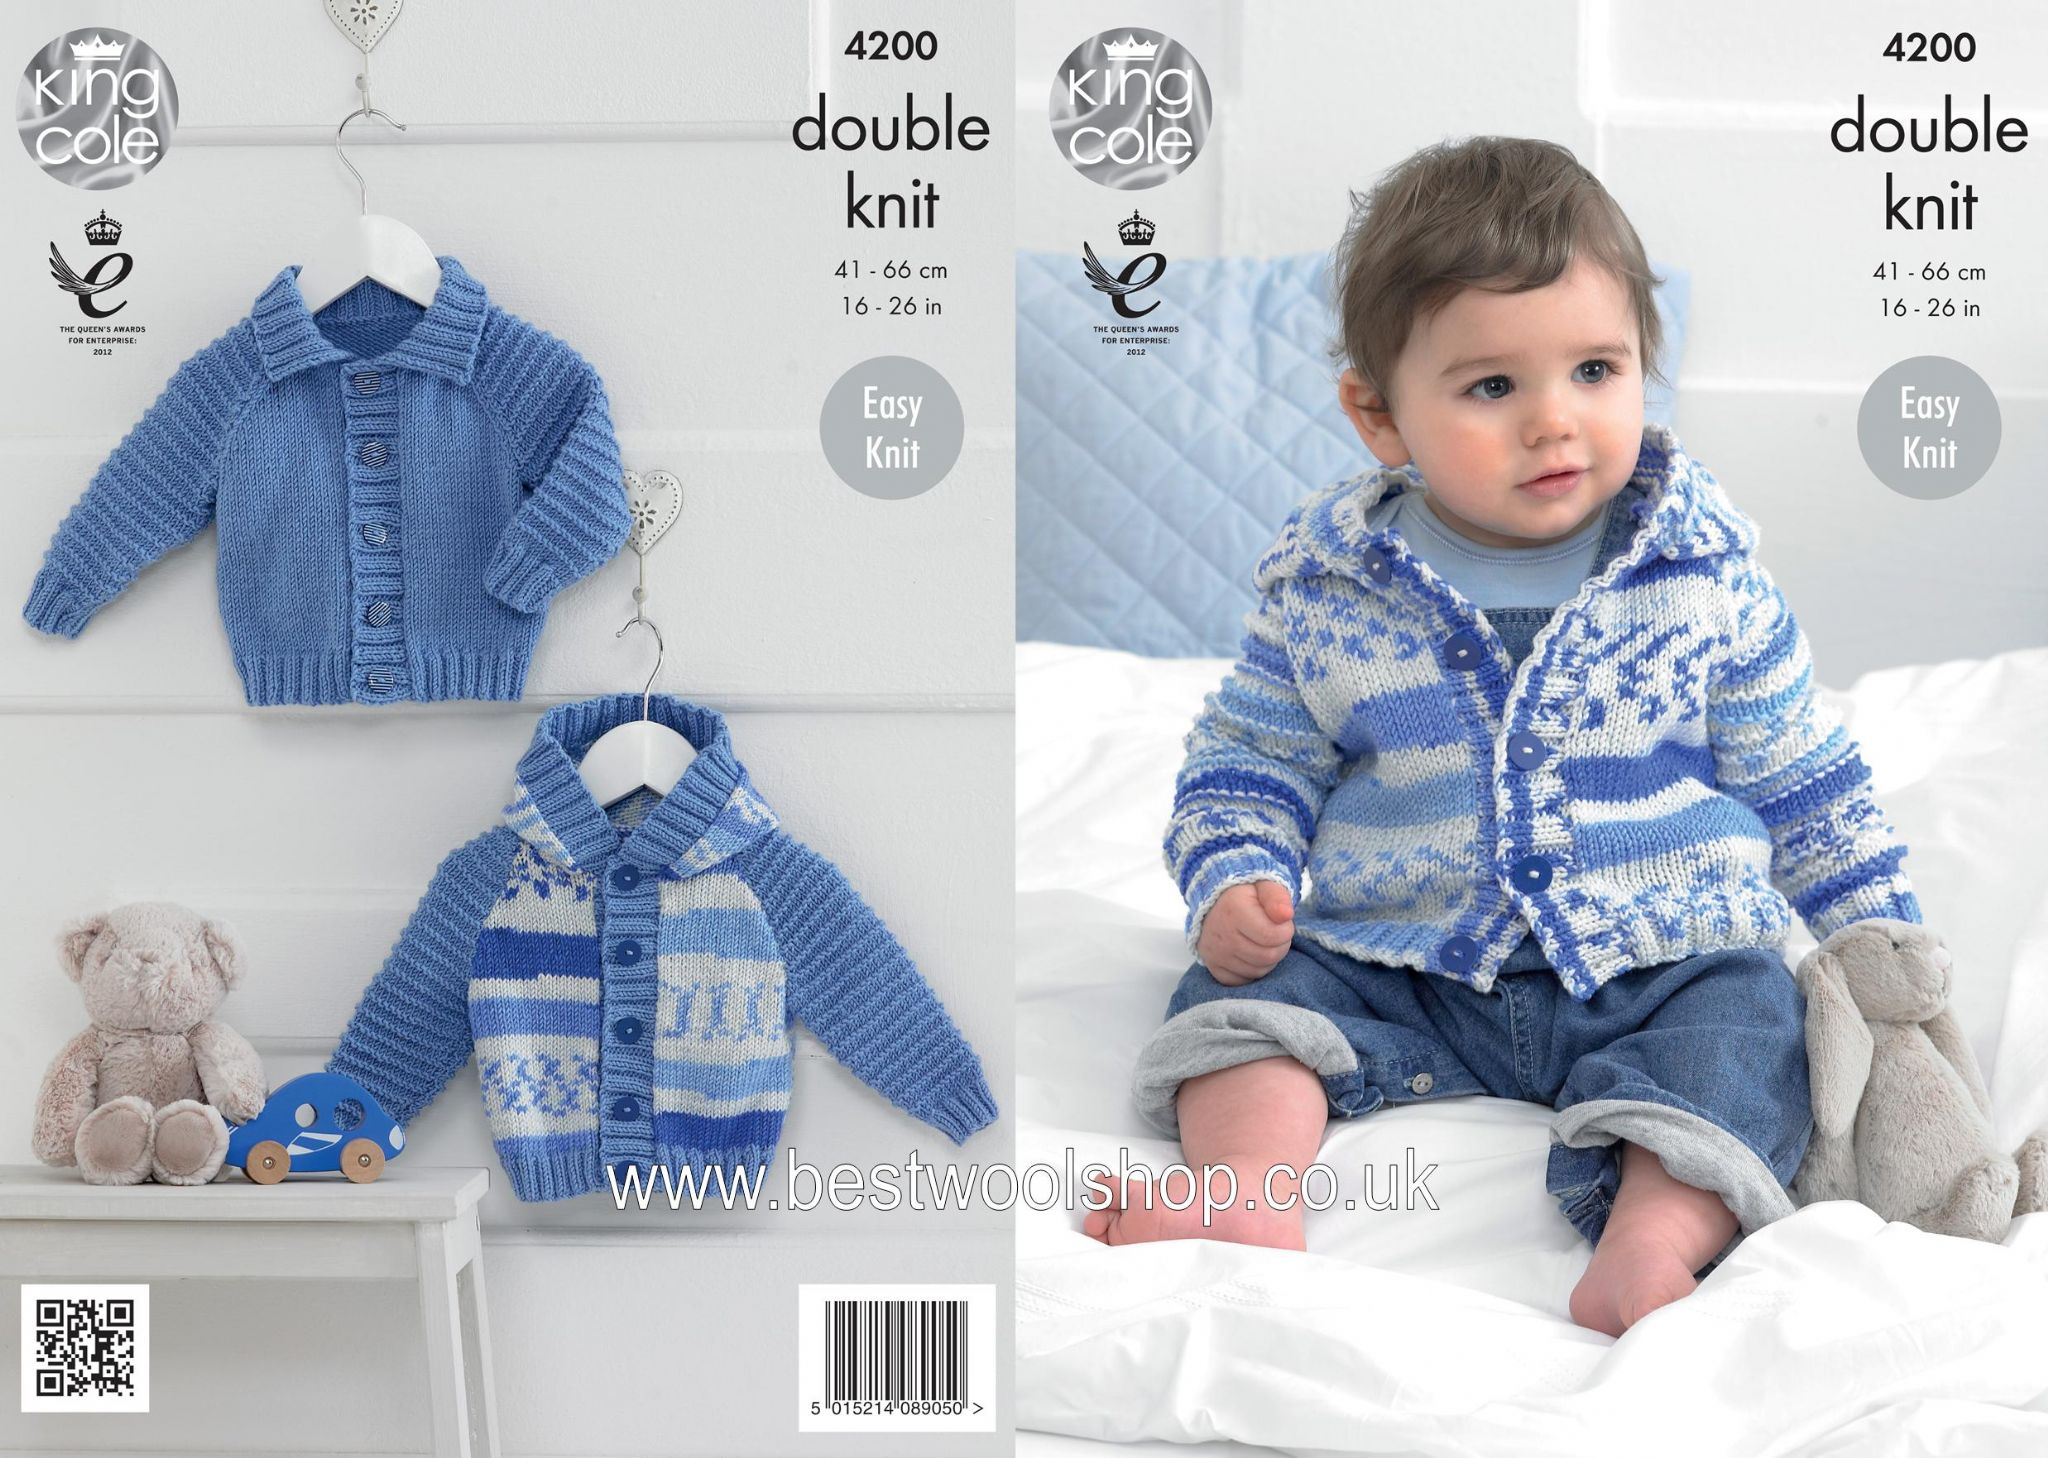 2f1bc90b4 4200-king-cole-cherish-cherished-dk-collared-hooded-cardigan-jacket-knitting -pattern-to-fit-0-to-7-years-99065-p.jpg